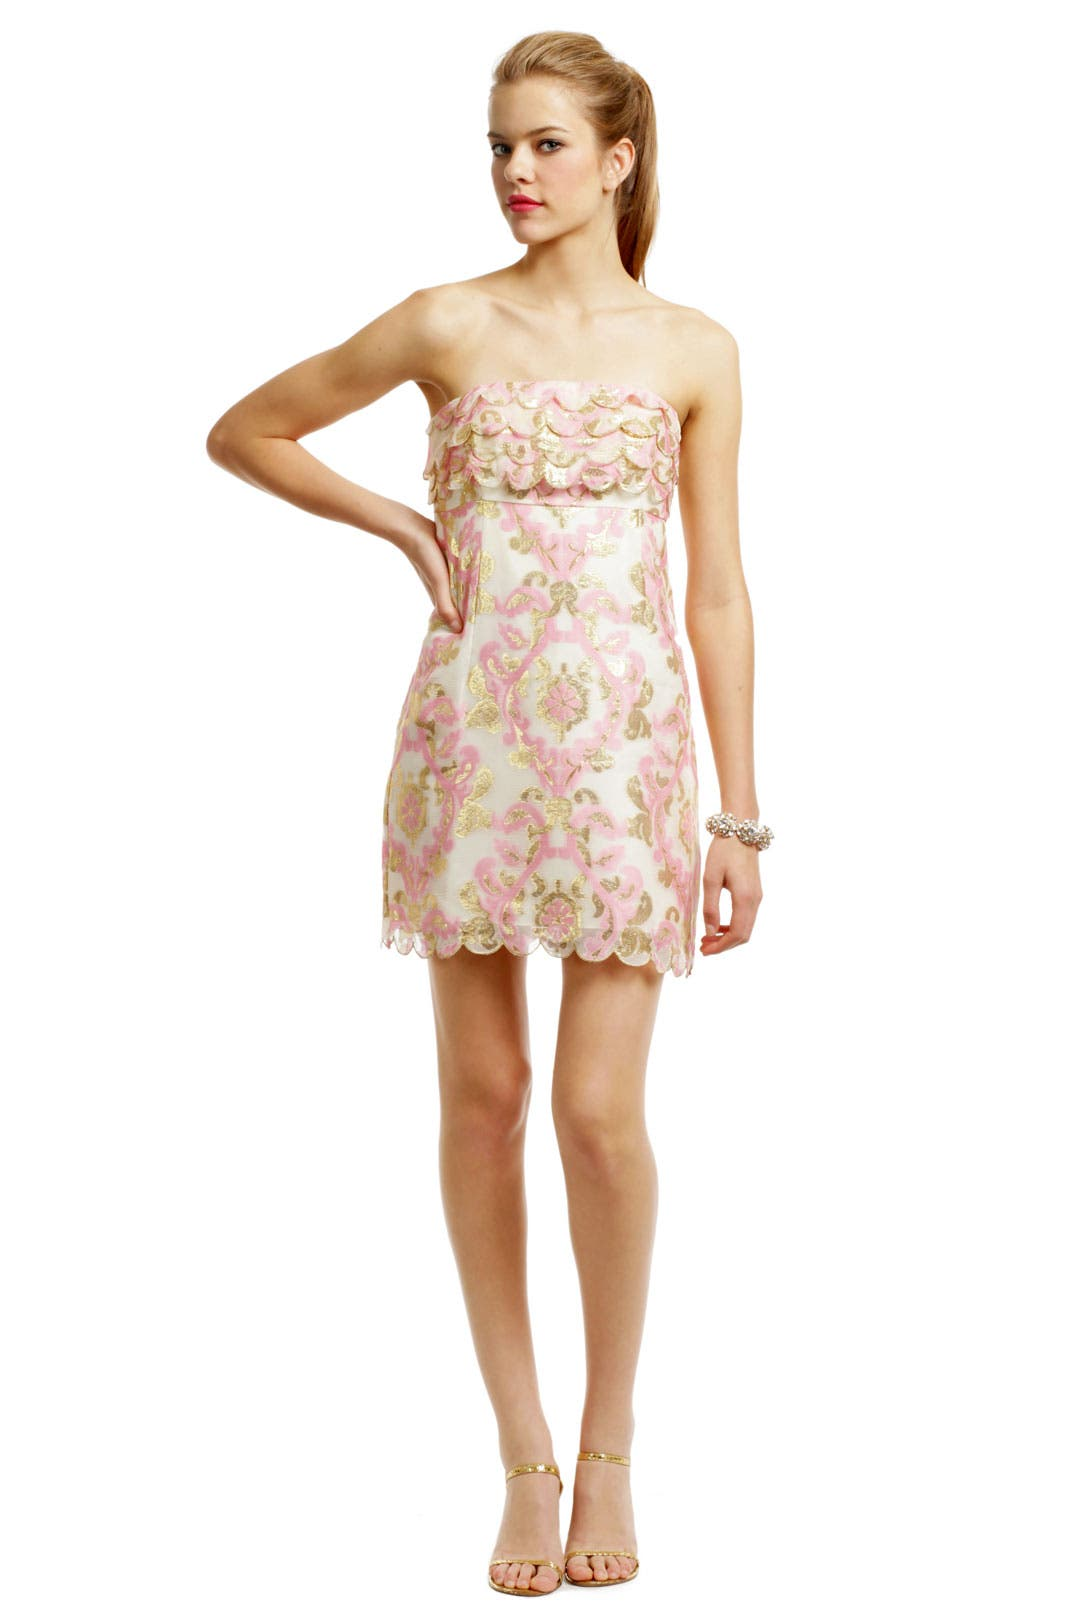 Celina Scallop Dress by Lilly Pulitzer